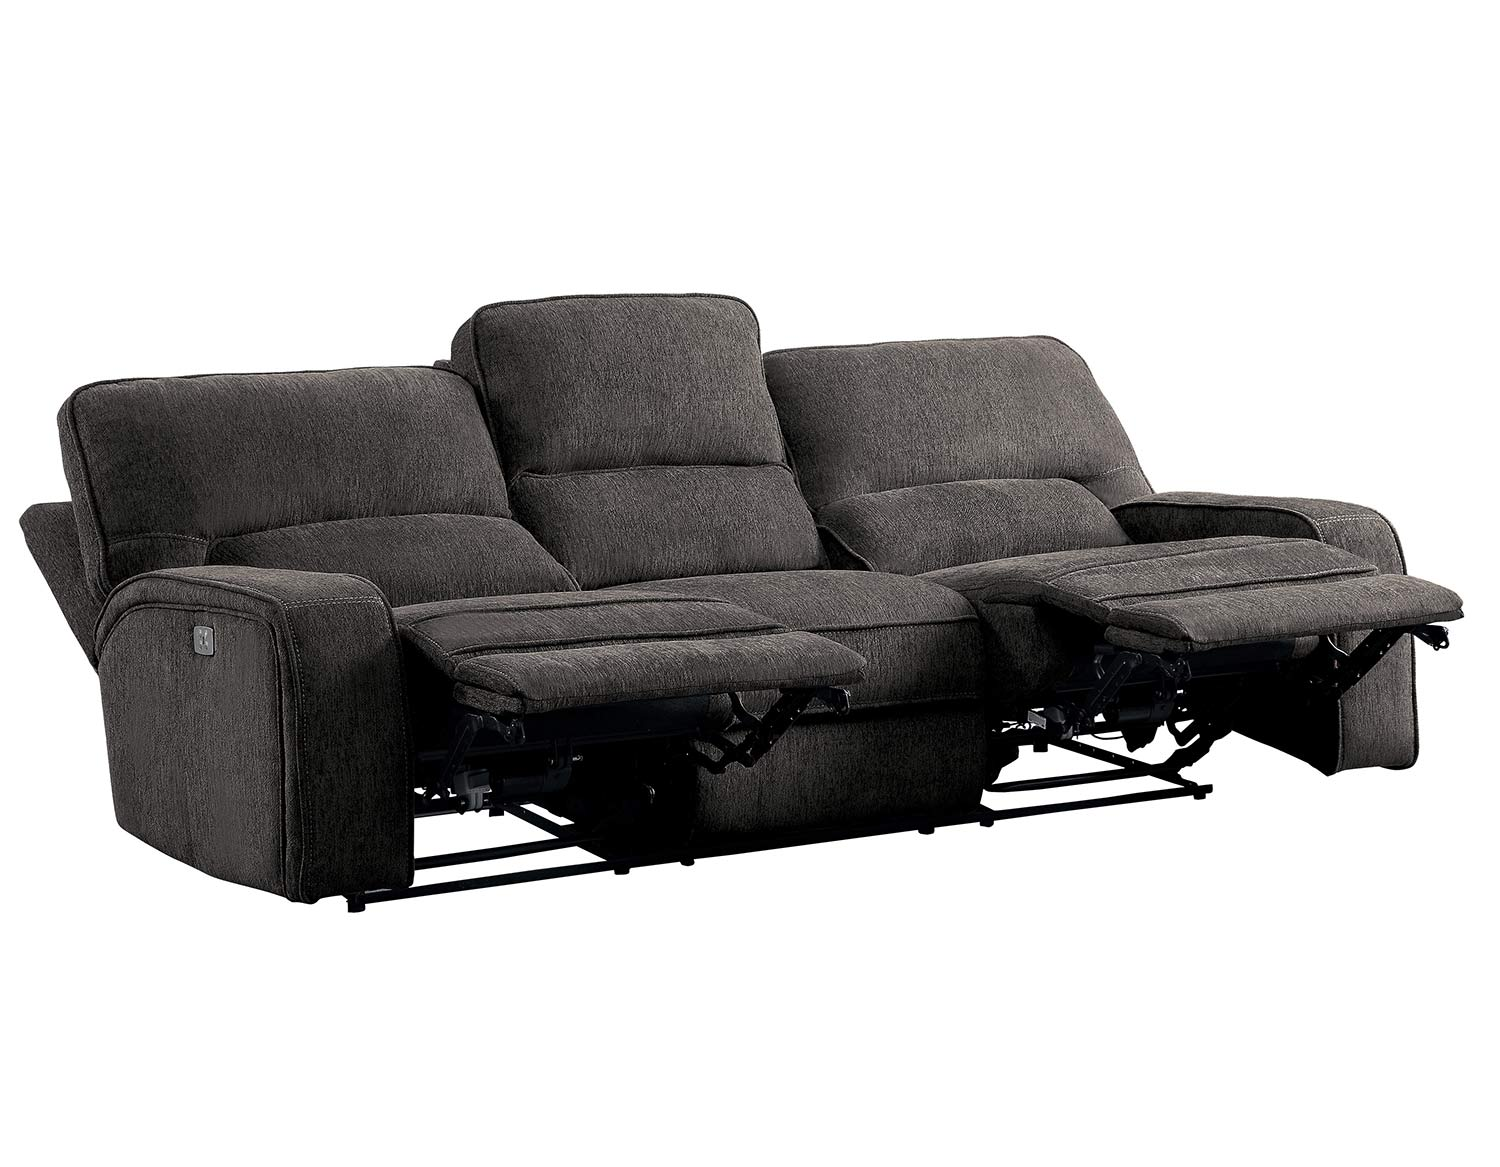 Homelegance Borneo Power Double Reclining Sofa with Power Headrest - Chocolate